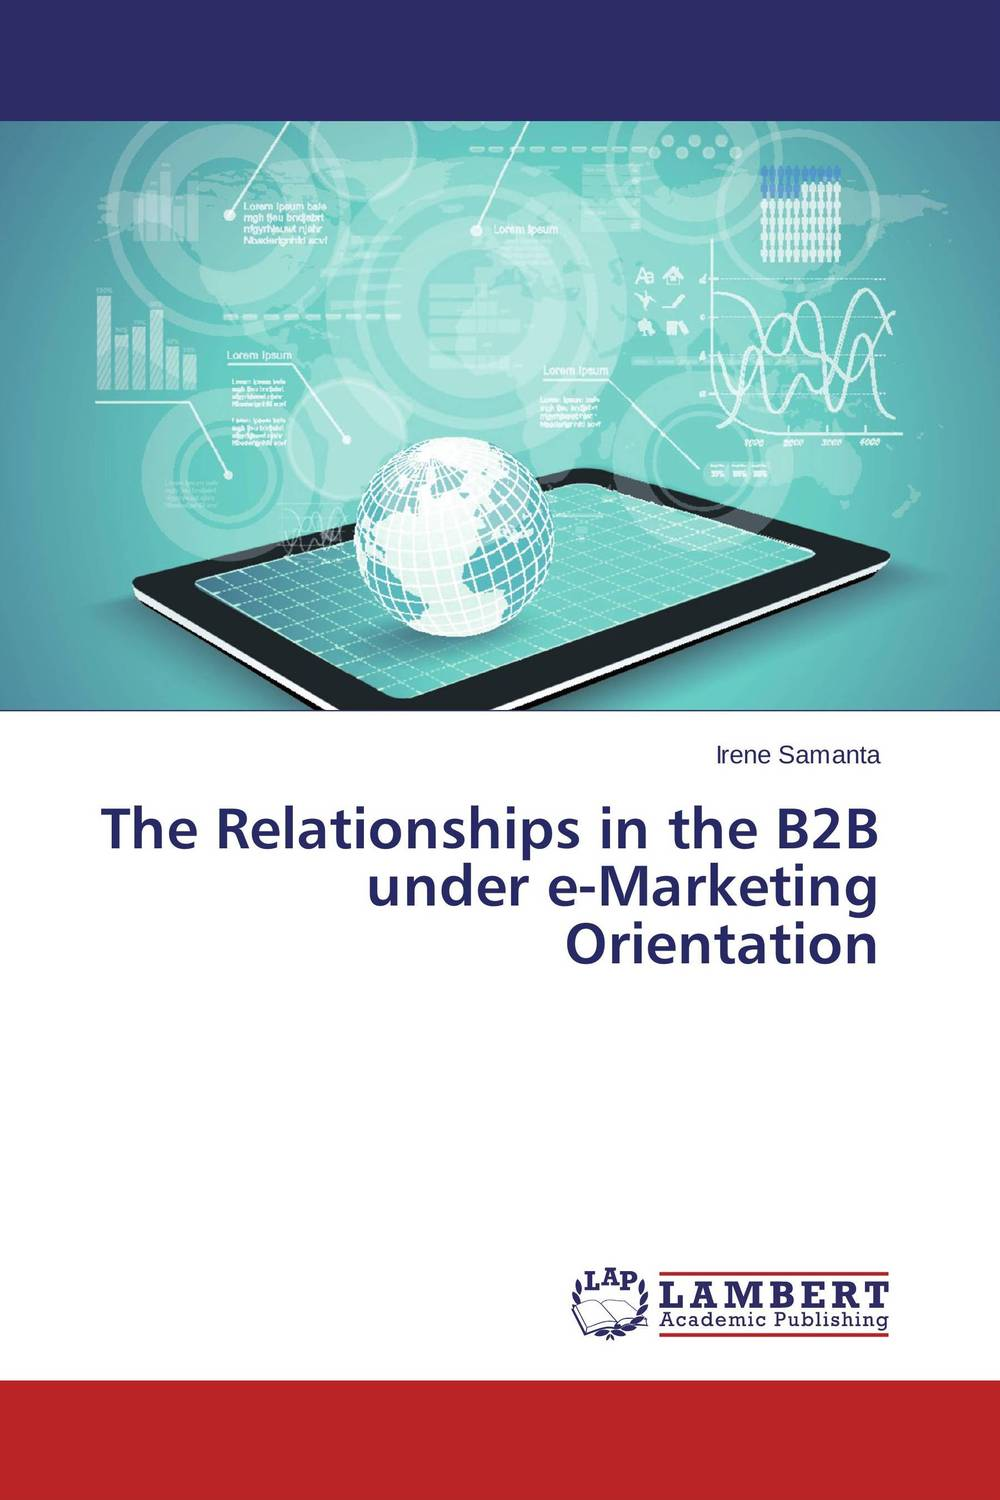 The Relationships in the B2B under e-Marketing Orientation